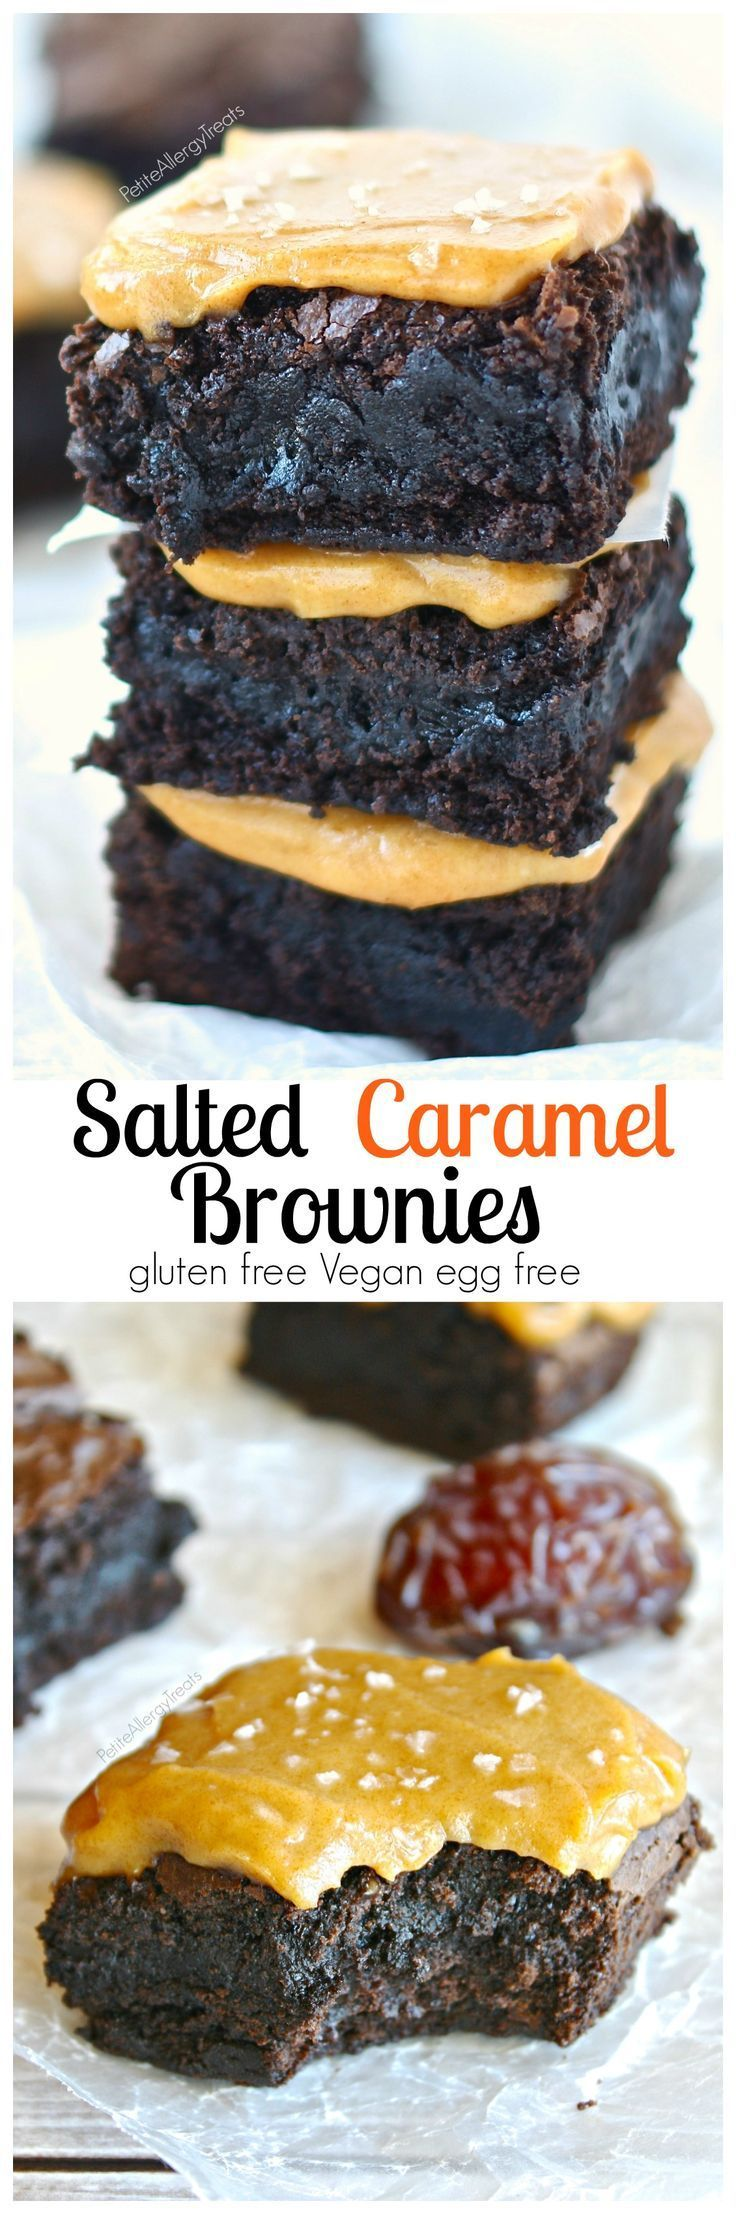 Gluten Free Salted Caramel Brownies (Vegan) Fudgy brownies covered with sweet and salty caramel sauce! Dairy free easy caramel sauce